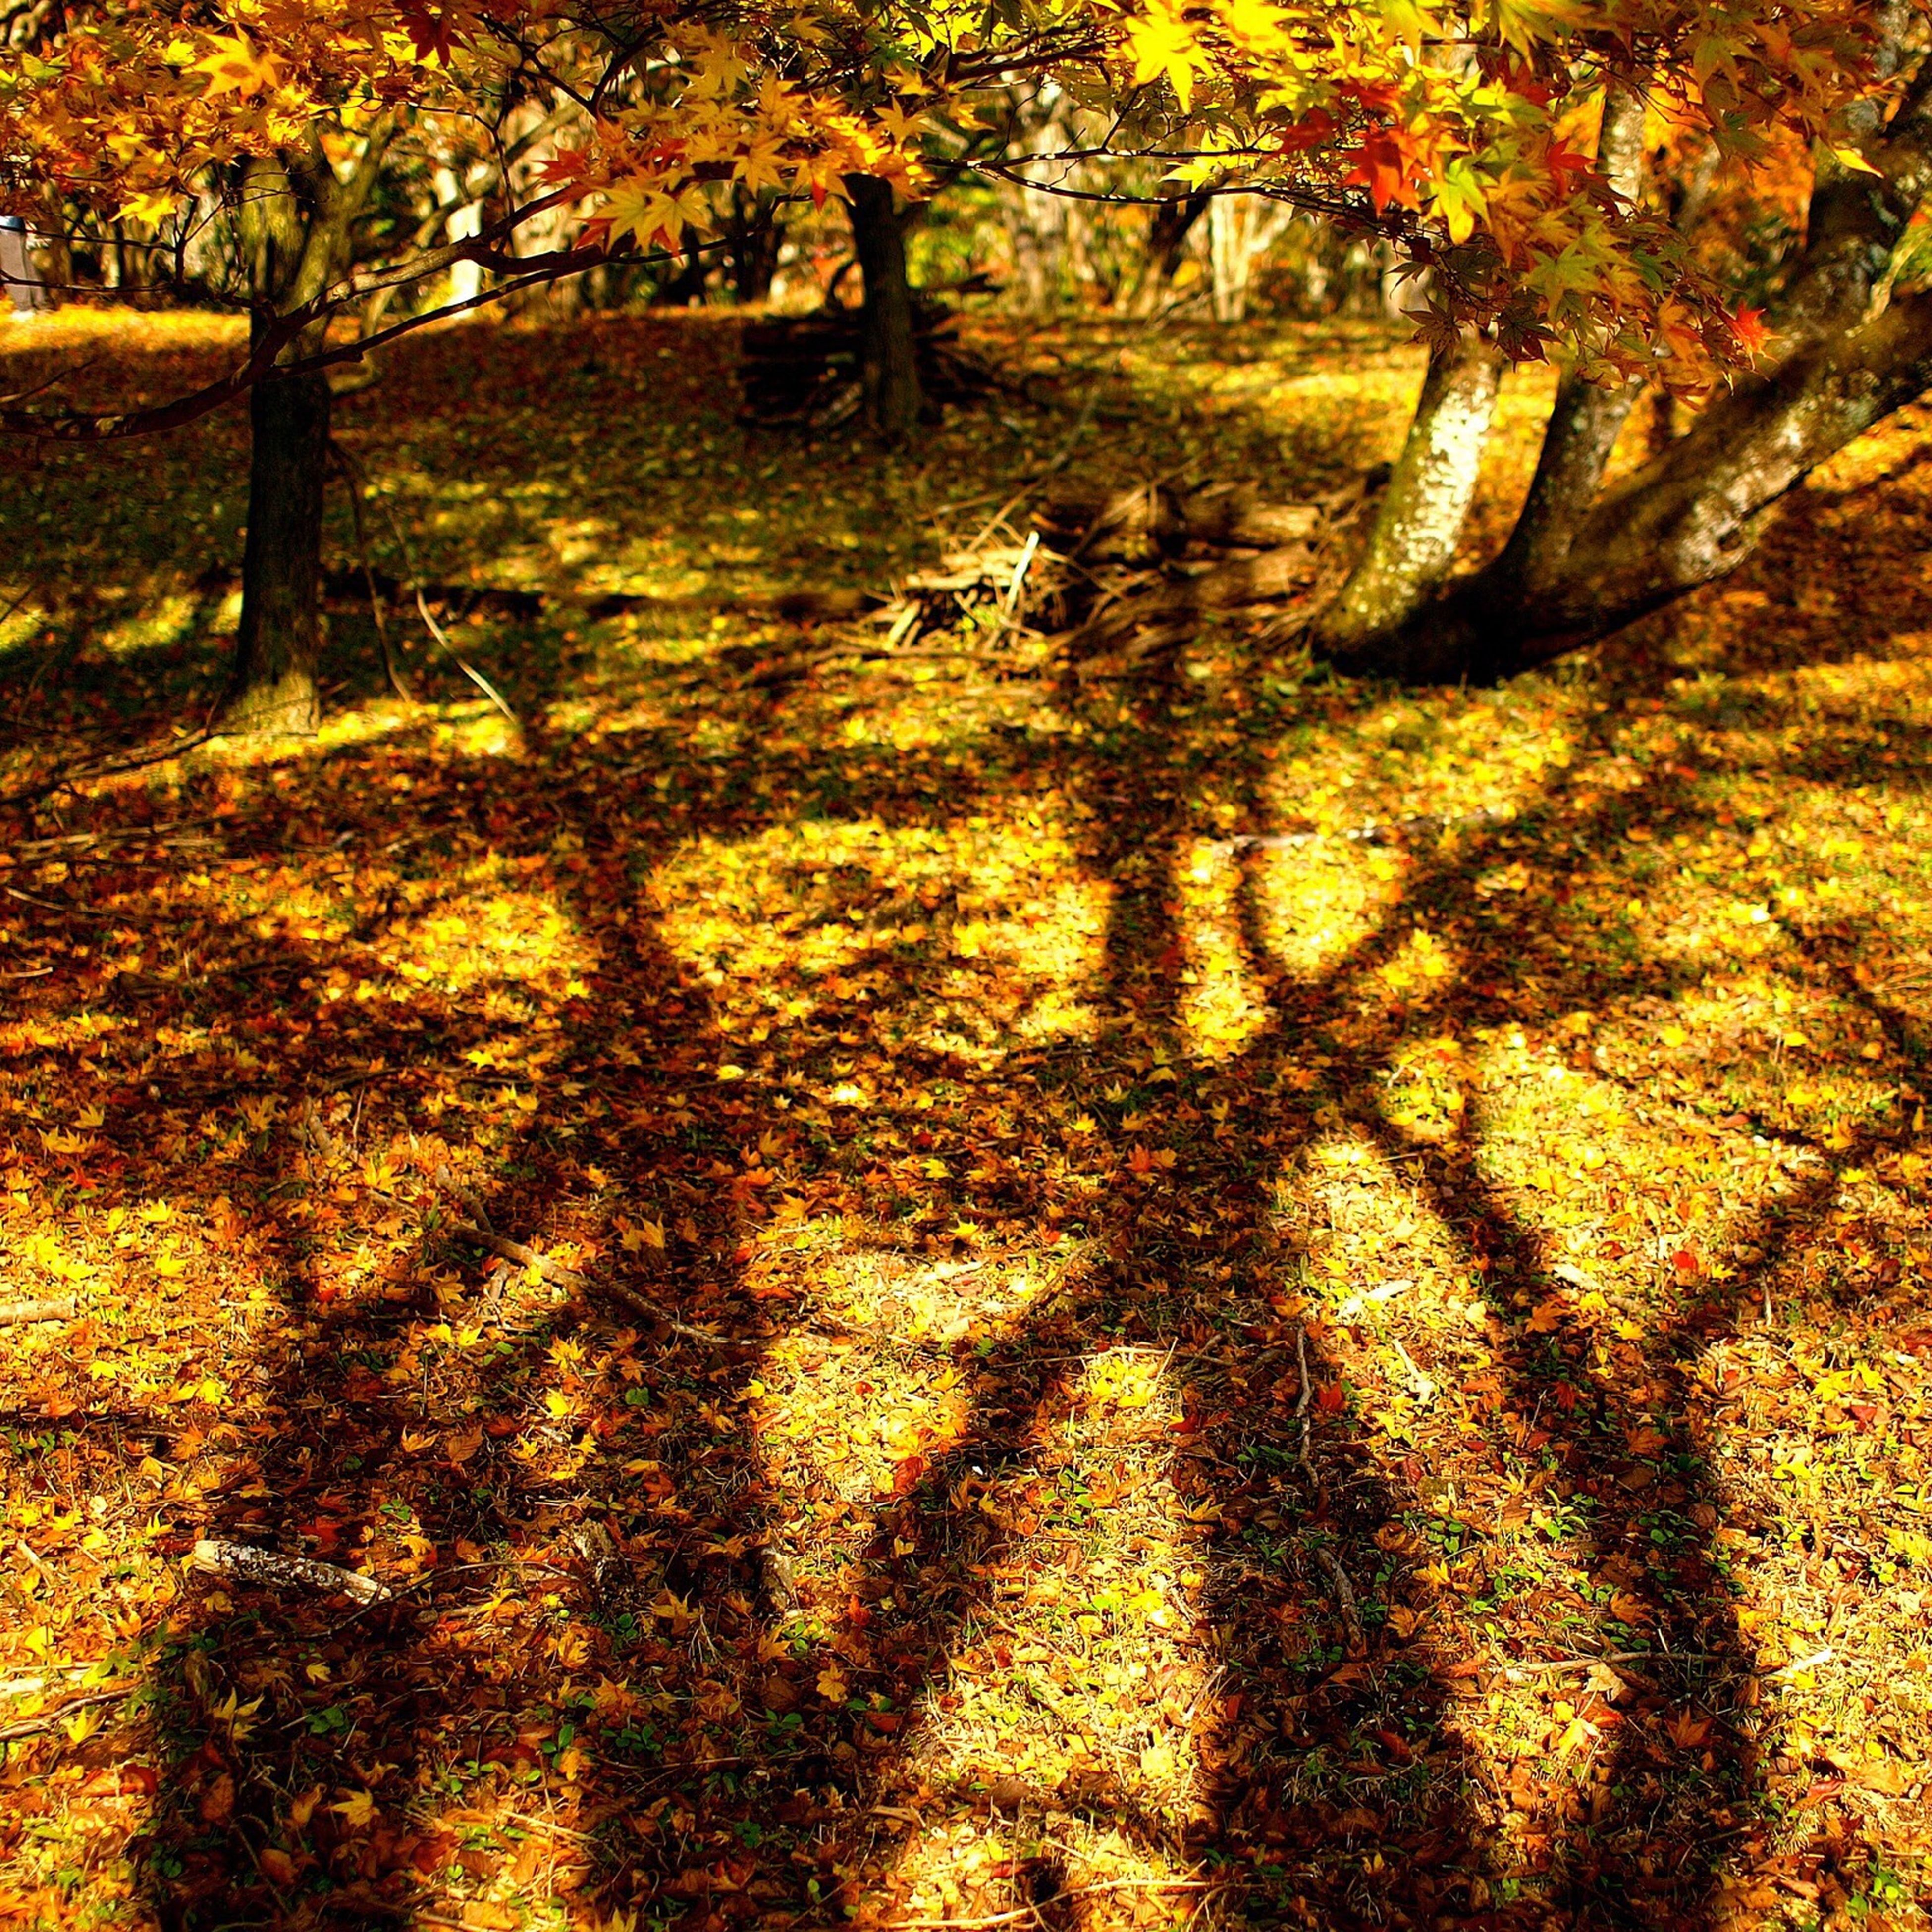 tree, yellow, orange color, autumn, growth, sunlight, nature, branch, tranquility, shadow, tree trunk, beauty in nature, change, sunset, tranquil scene, outdoors, scenics, season, park - man made space, no people